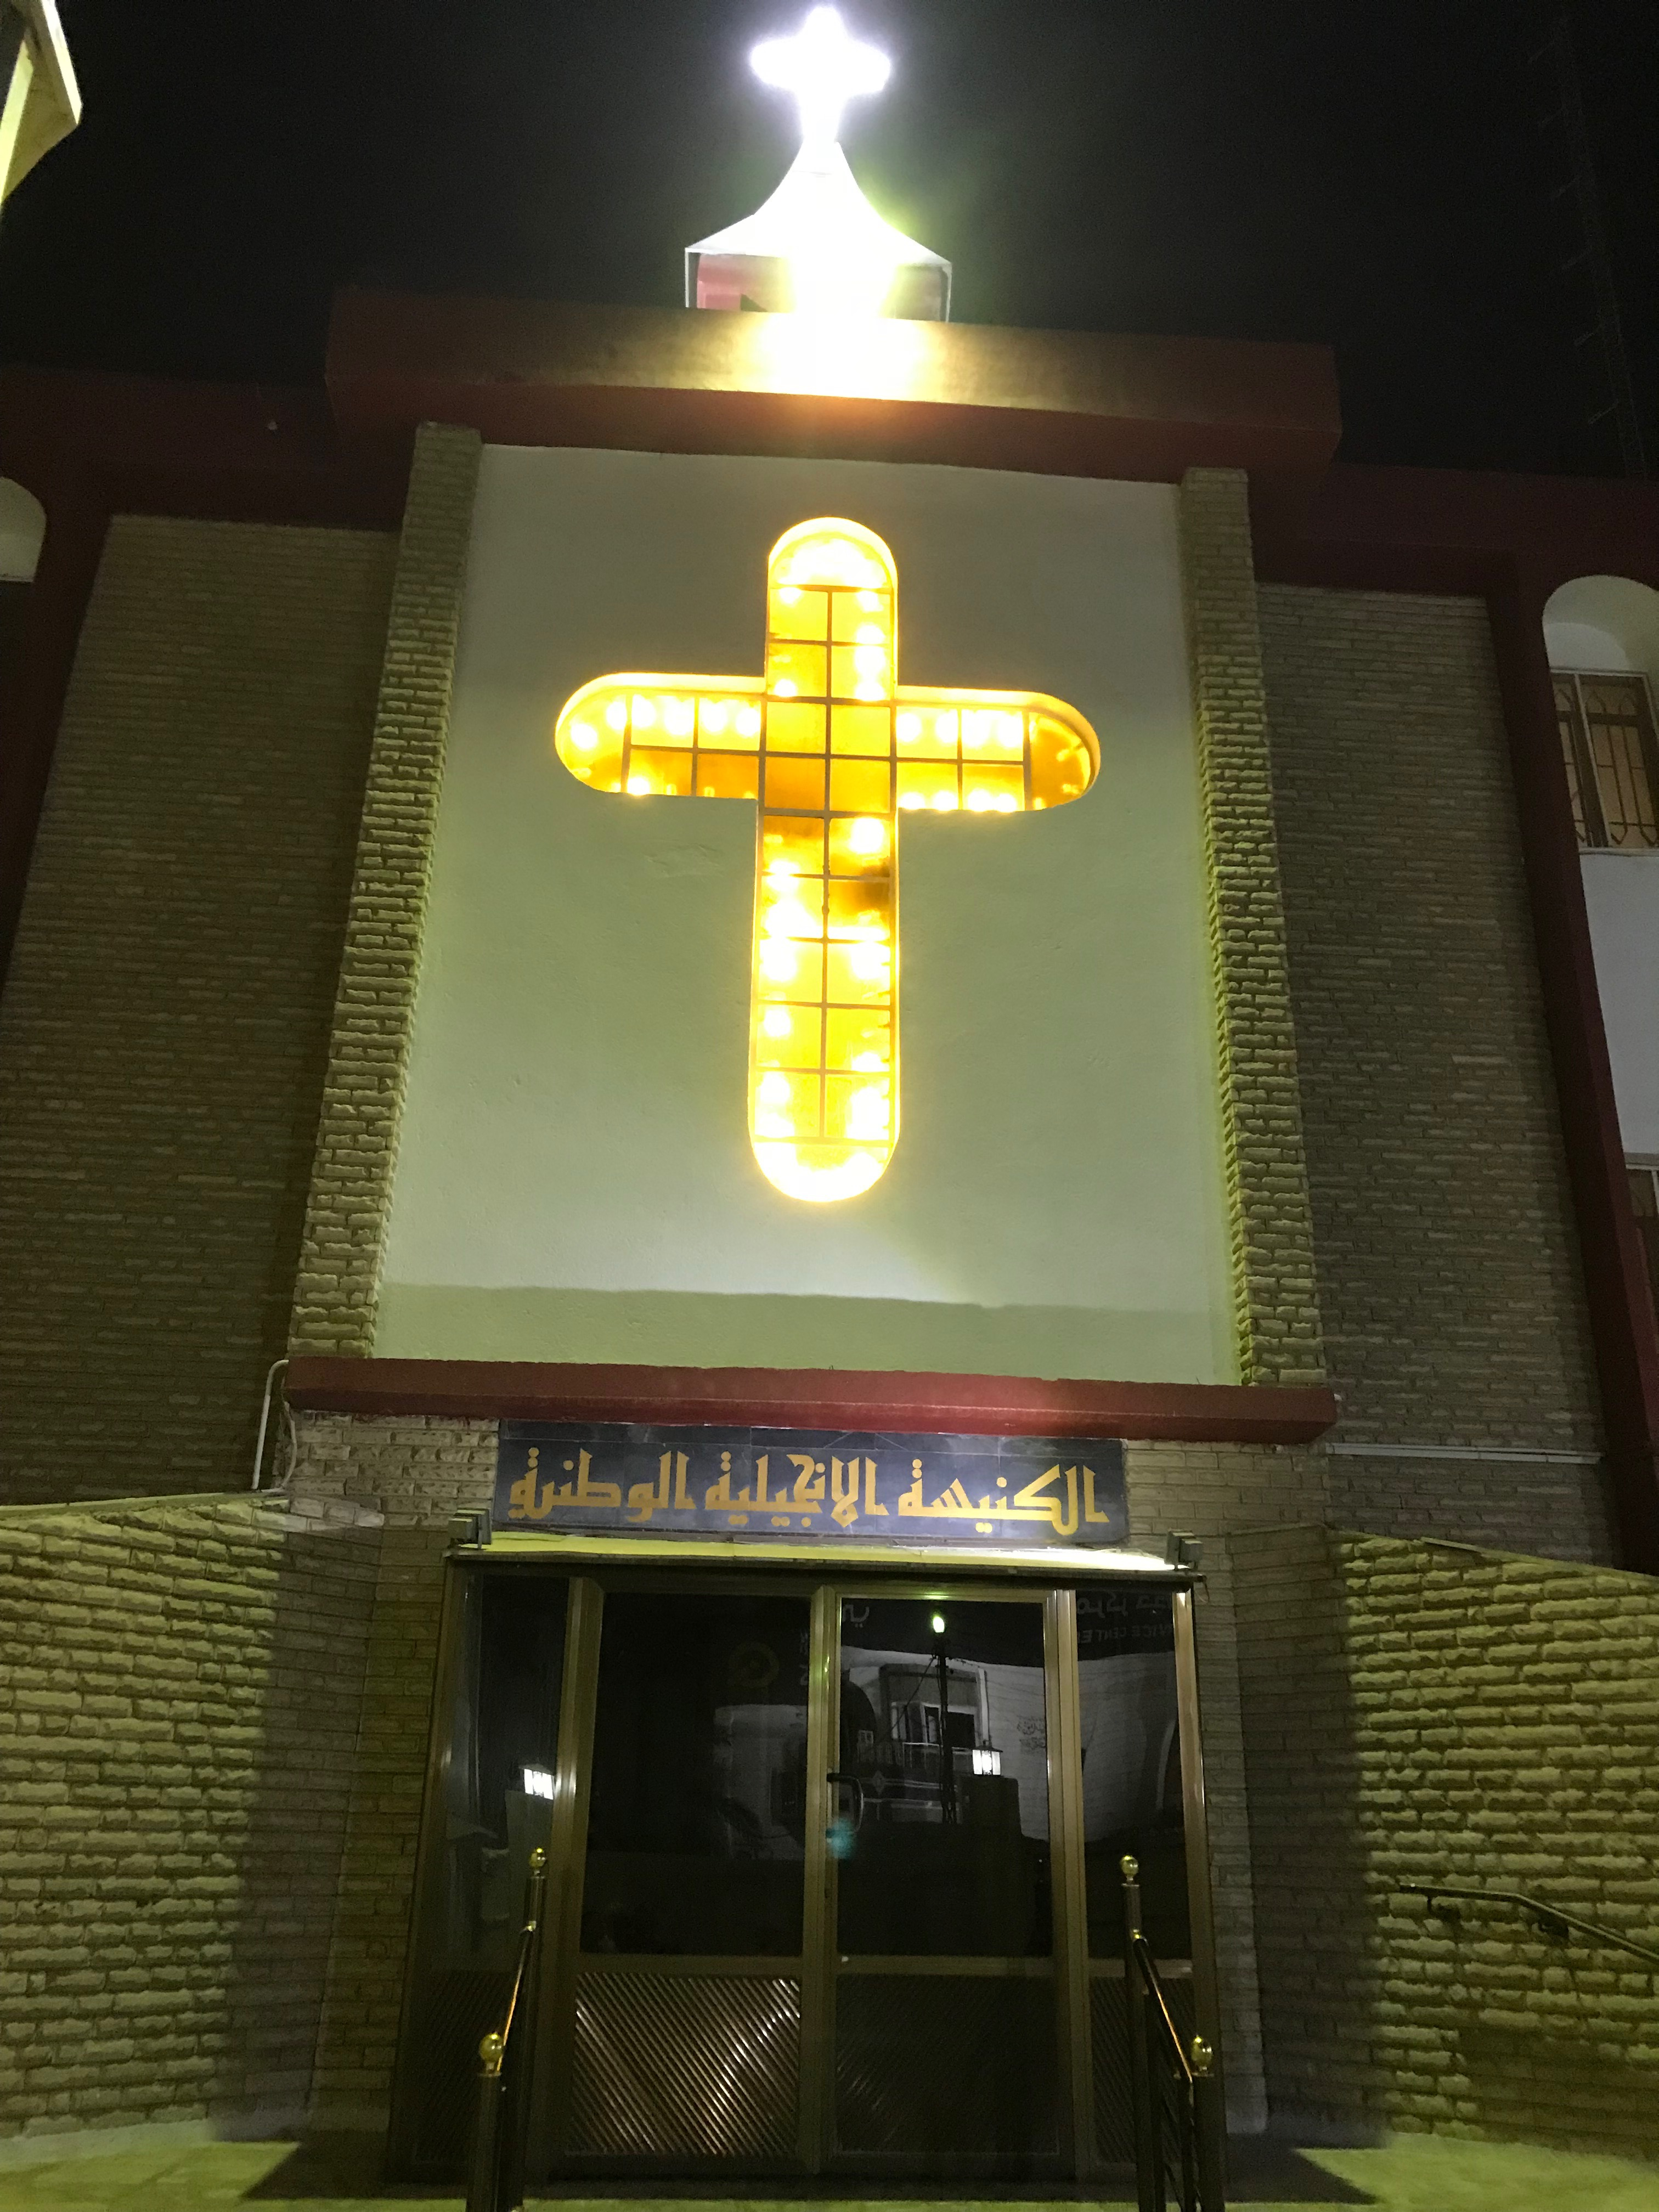 The lit crosses of the Presbyterian Church in Basra—a visible reminder to the wider community of this congregation's continuing service to those who are most vulnerable.